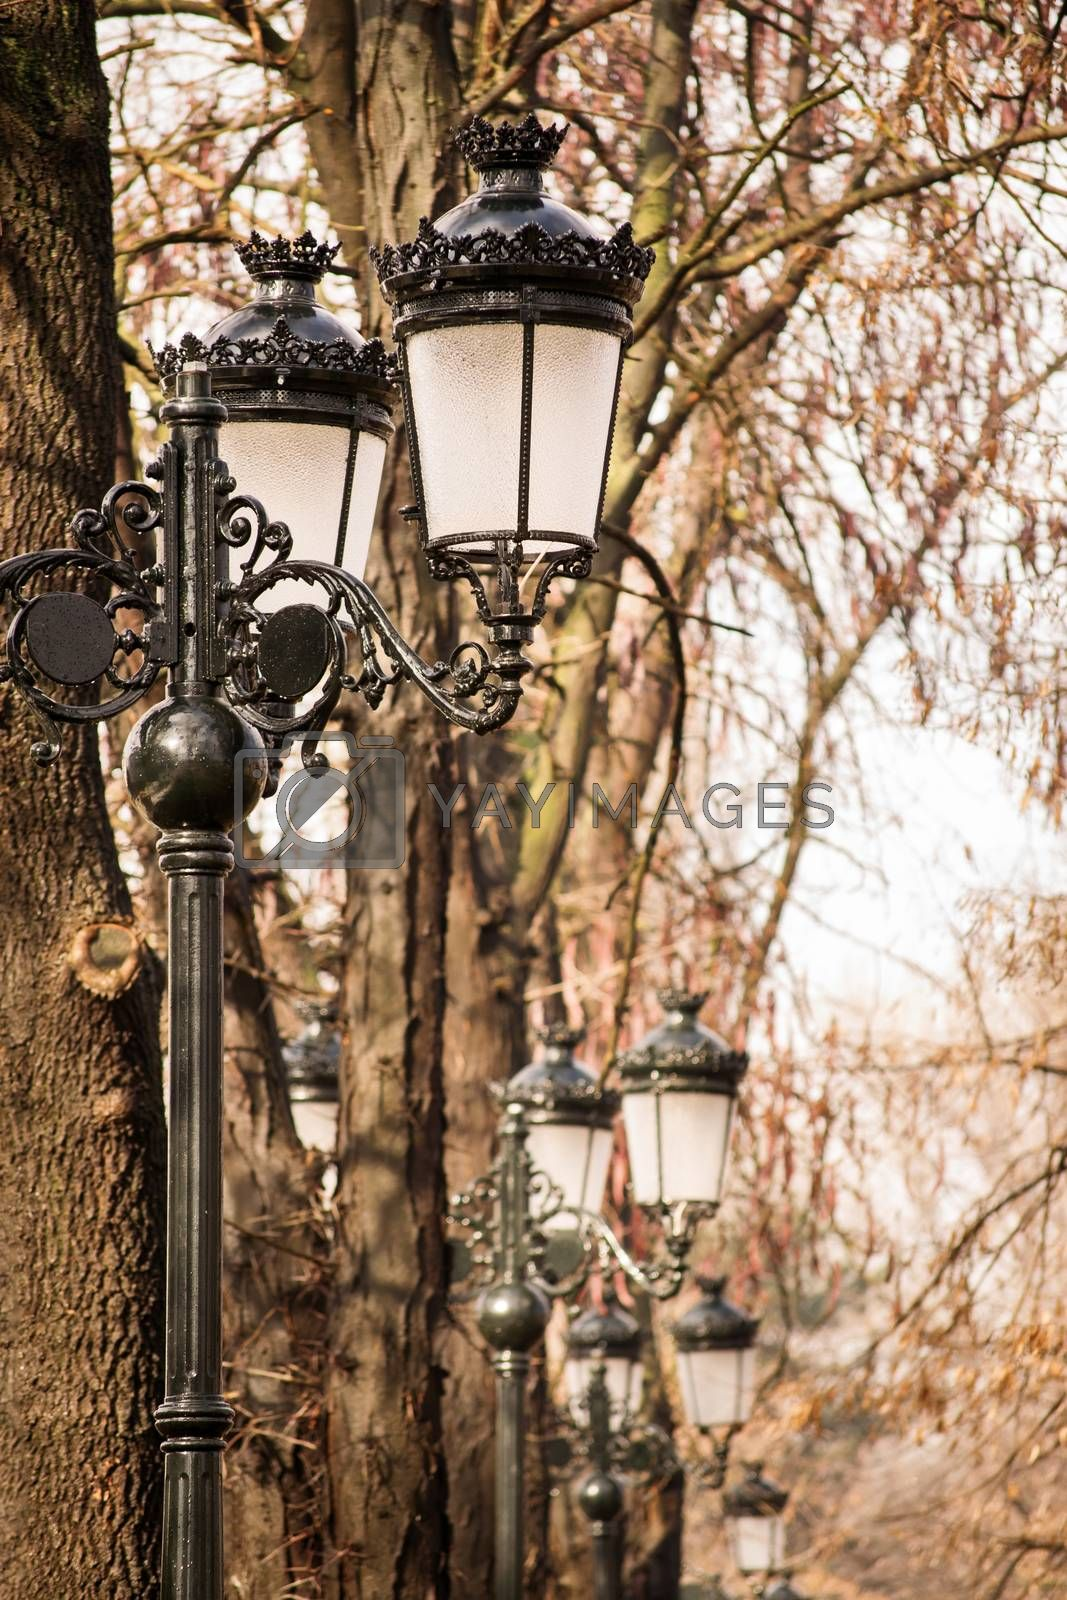 Close up shot of an array of old fashioned lantern street lights in a park.